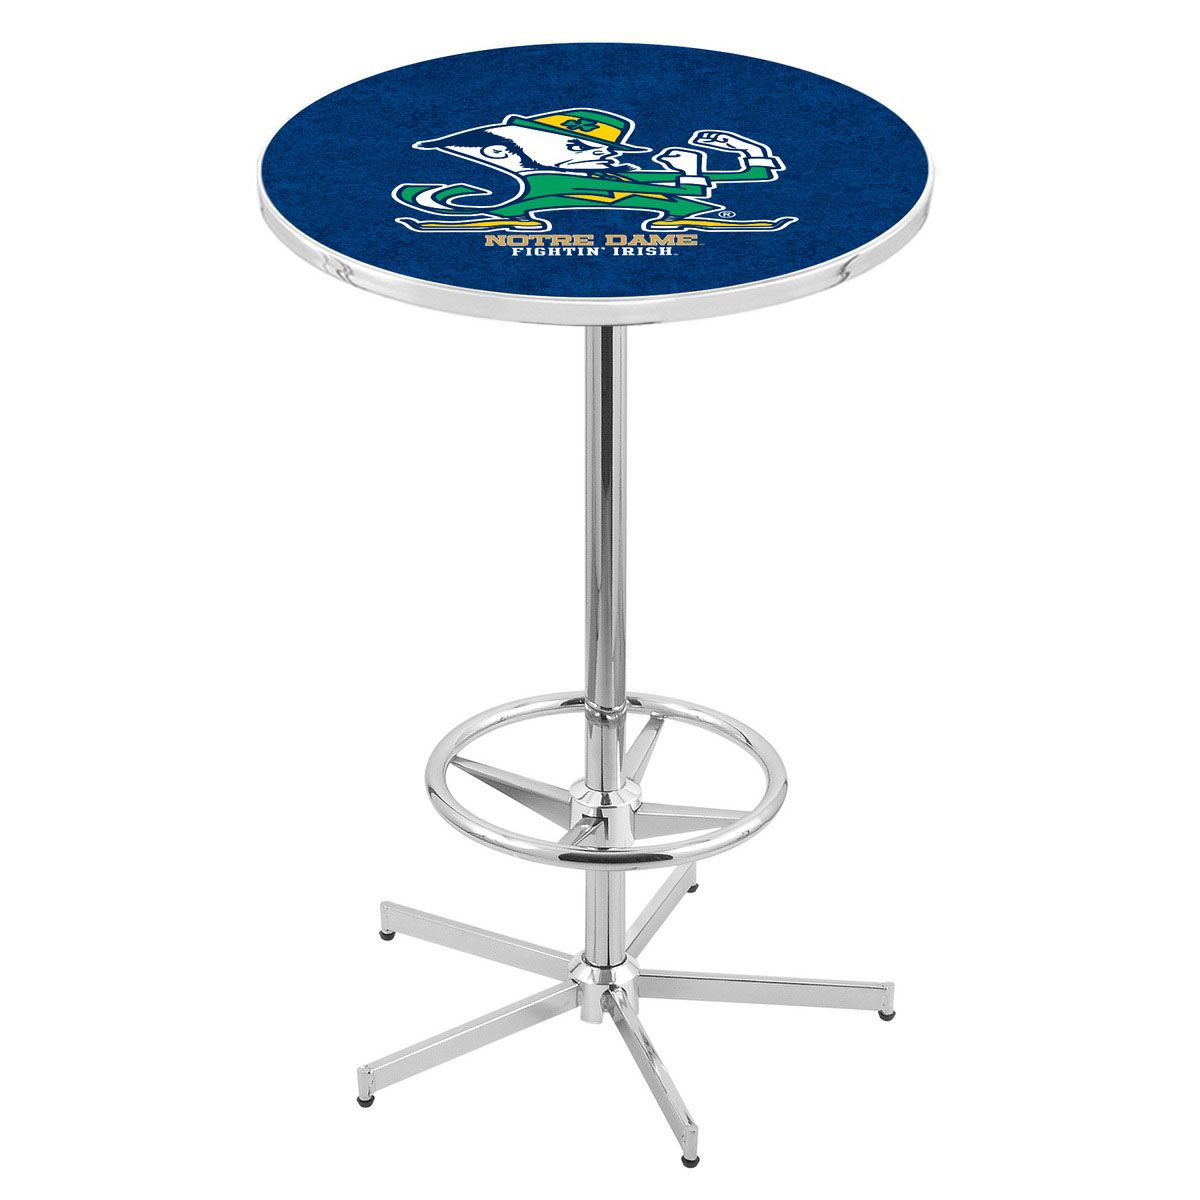 Superb-quality Chrome Notre Dame Leprechaun Pub Table Product Photo